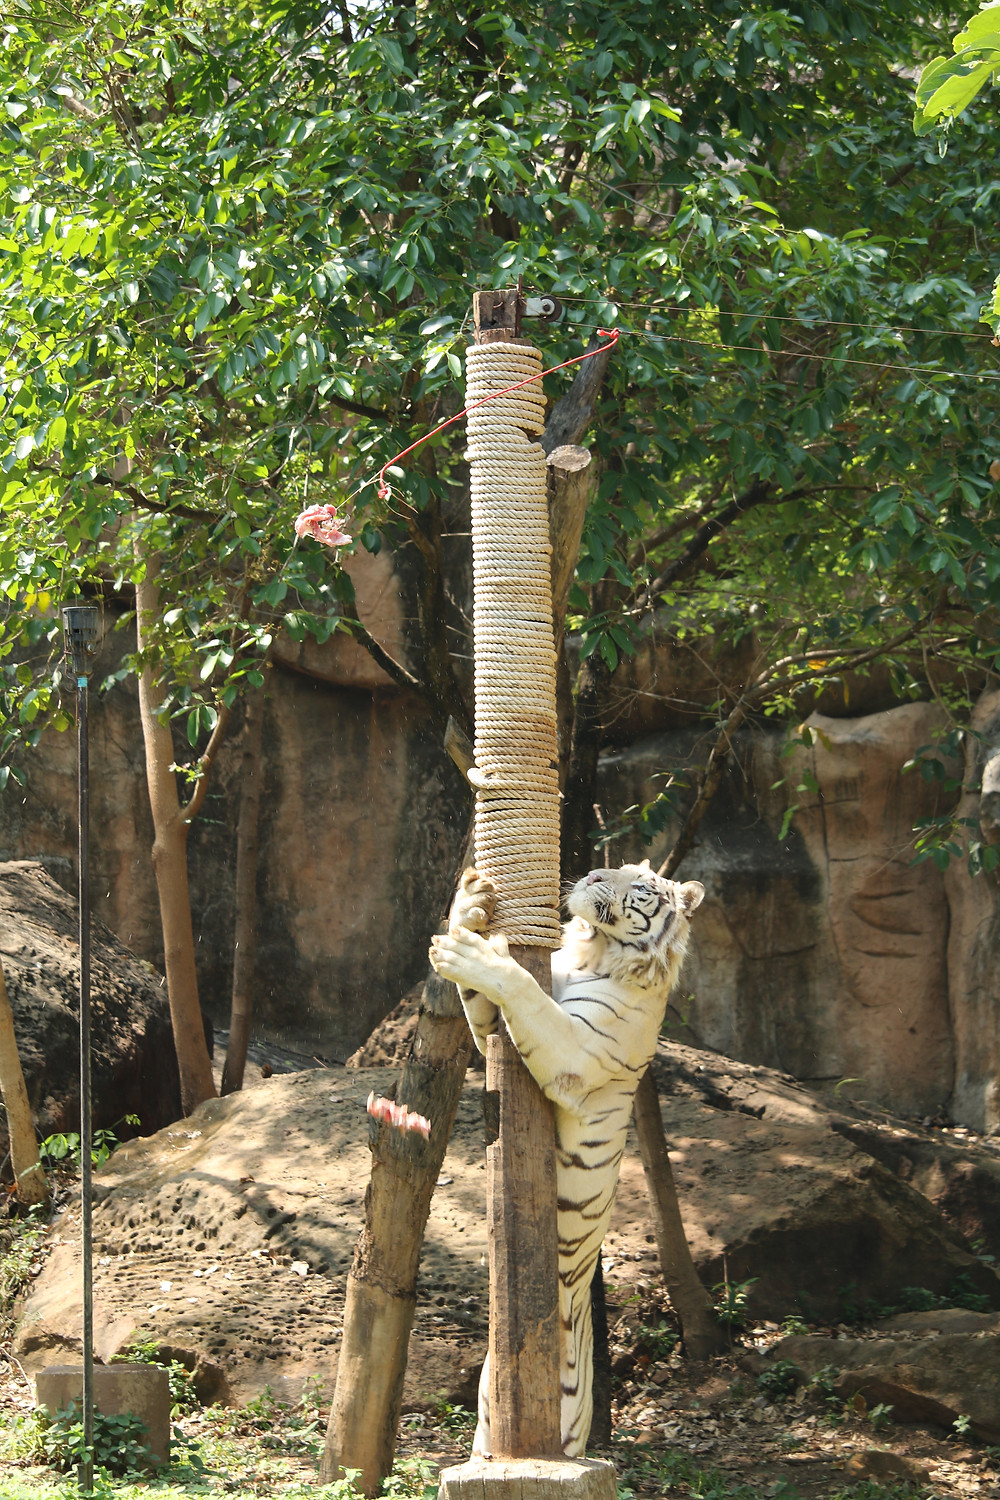 Tiger uses feeding pole